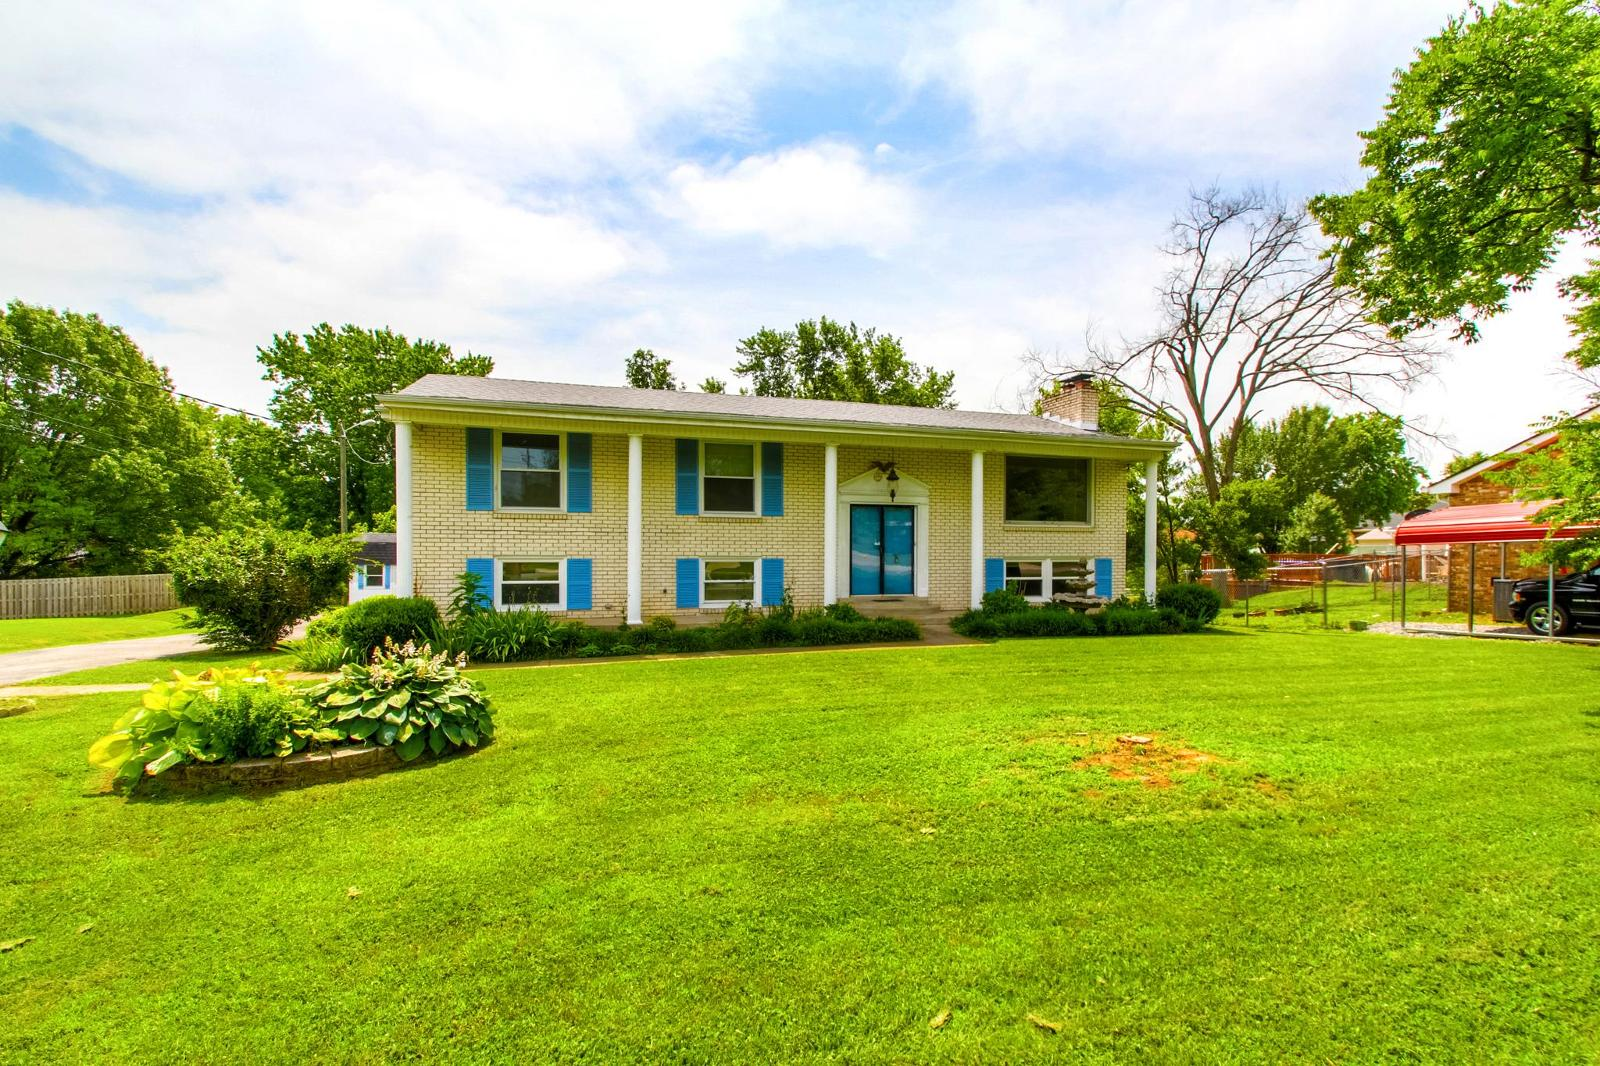 1317 sioux ter madison tn mls 1833363 era for 1184 sioux terrace madison tn